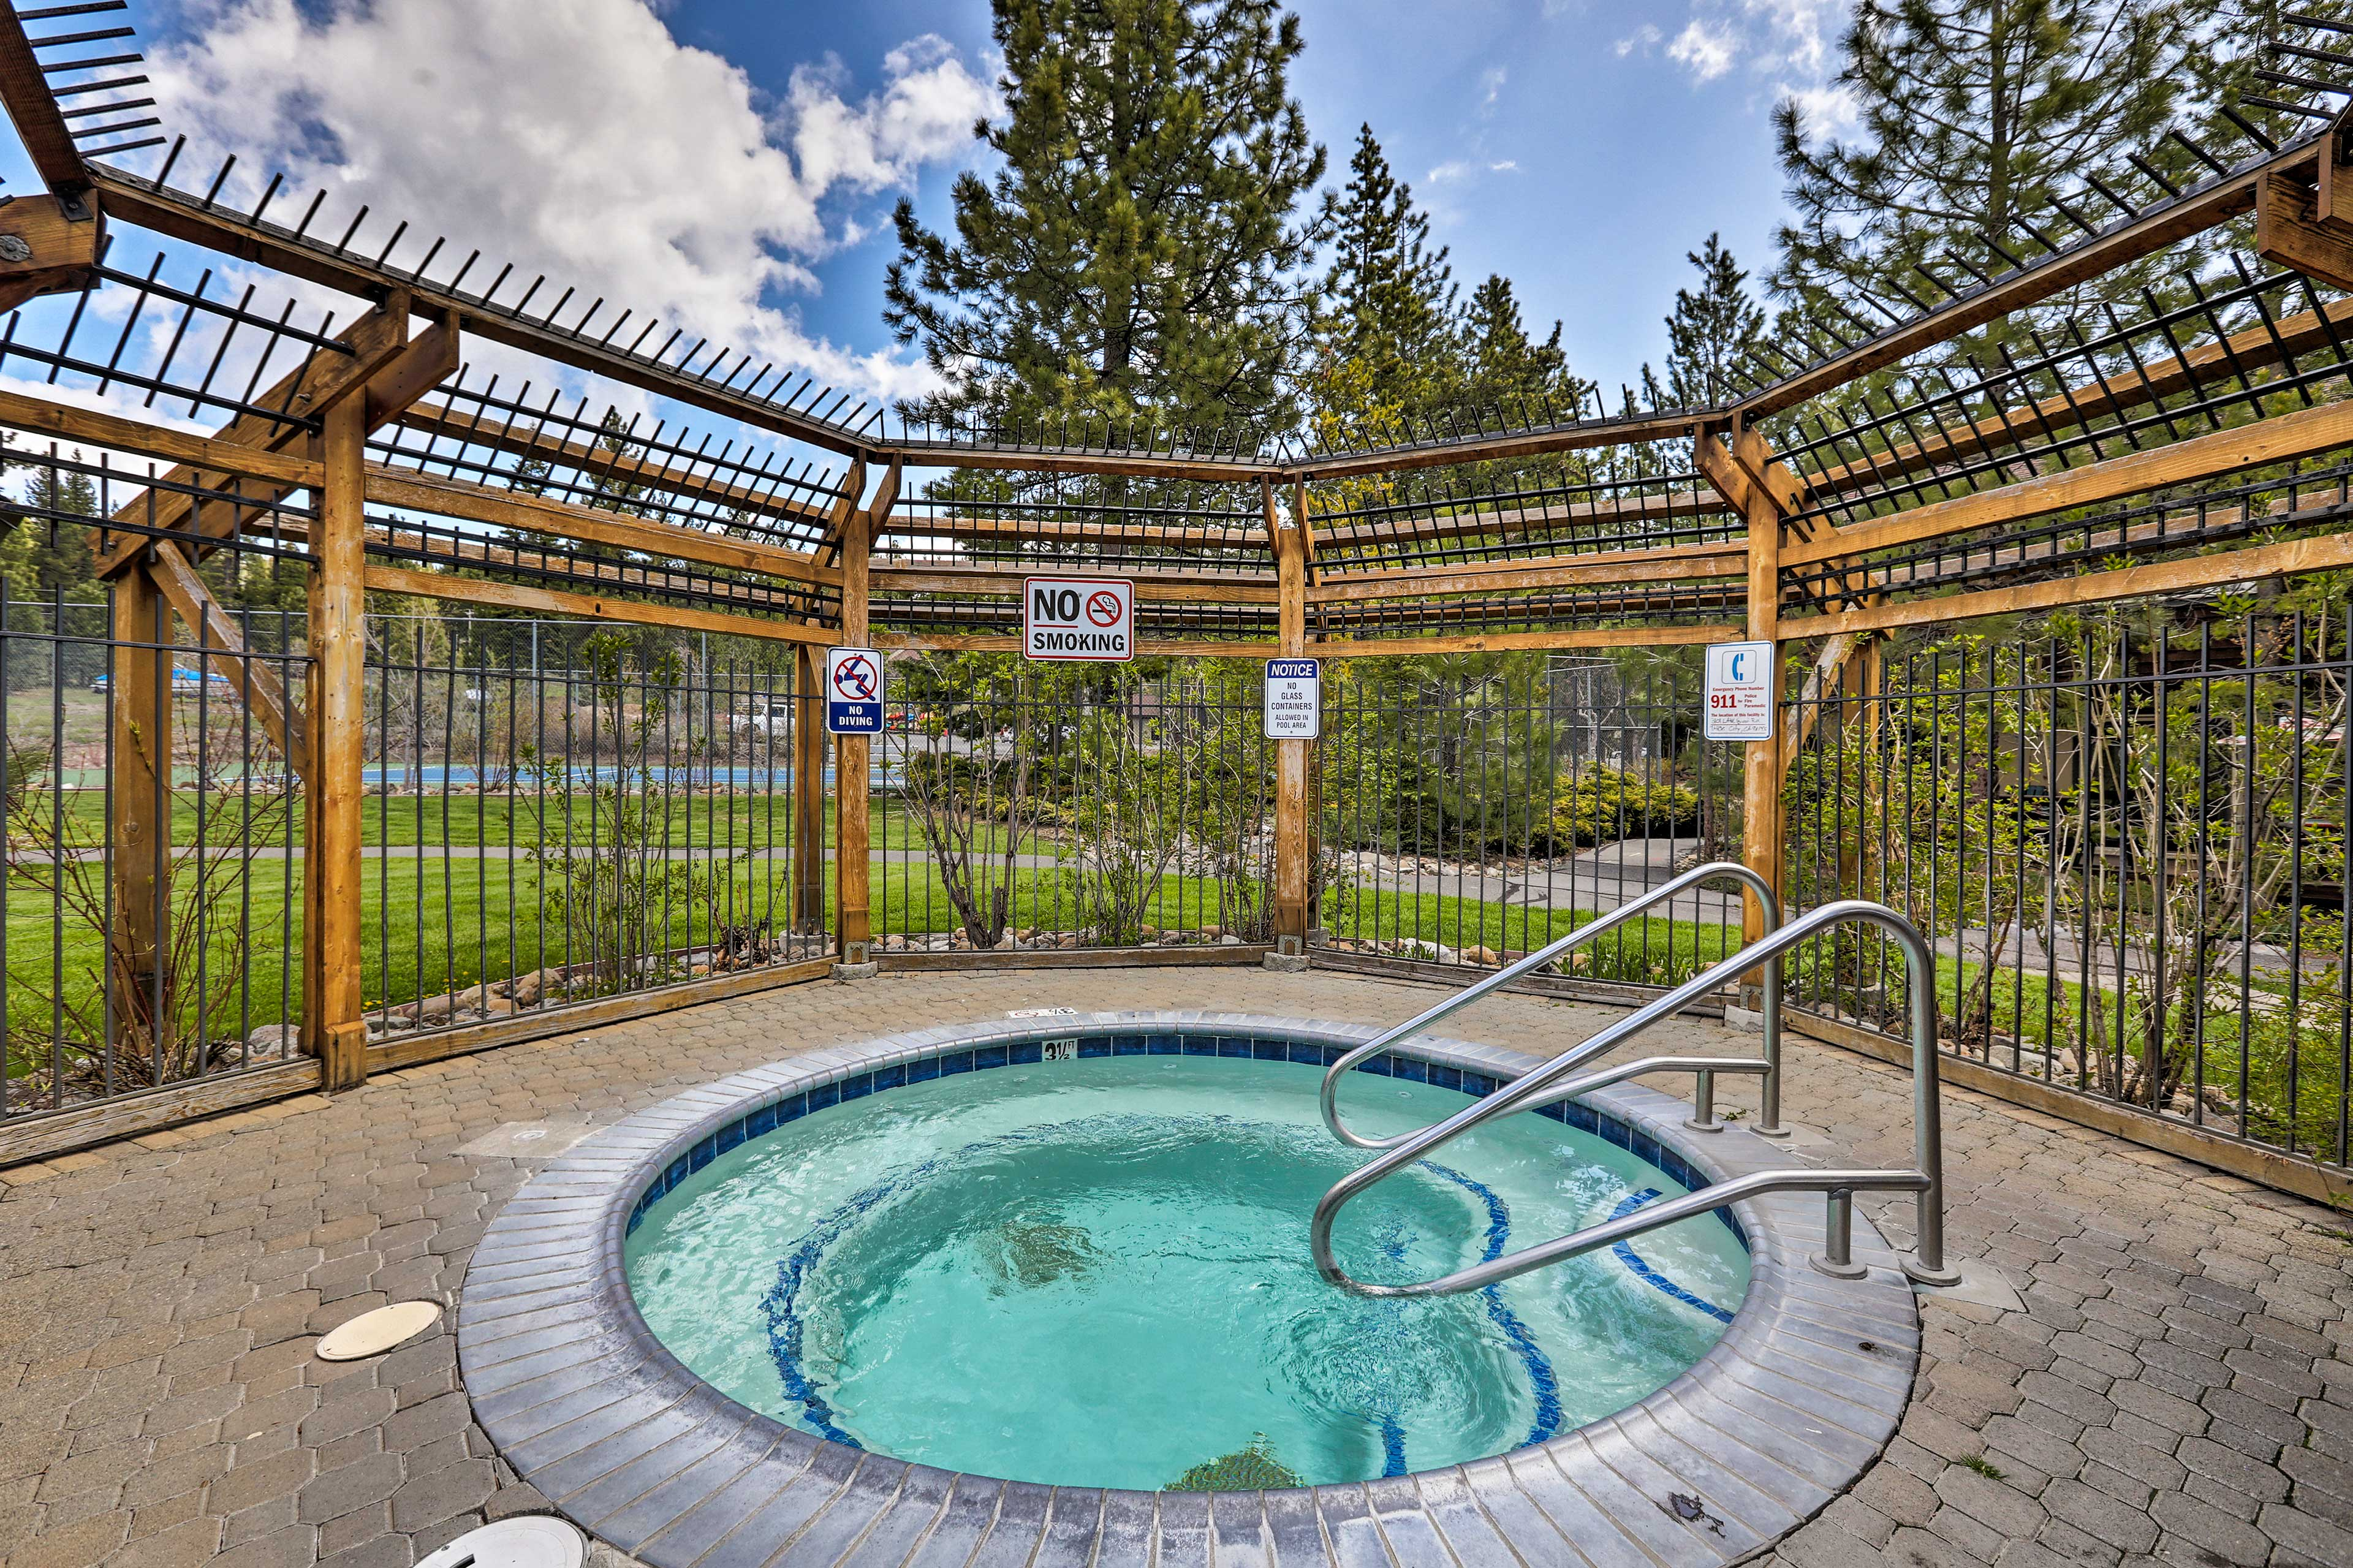 Soak your sore muscles in the hot tub.